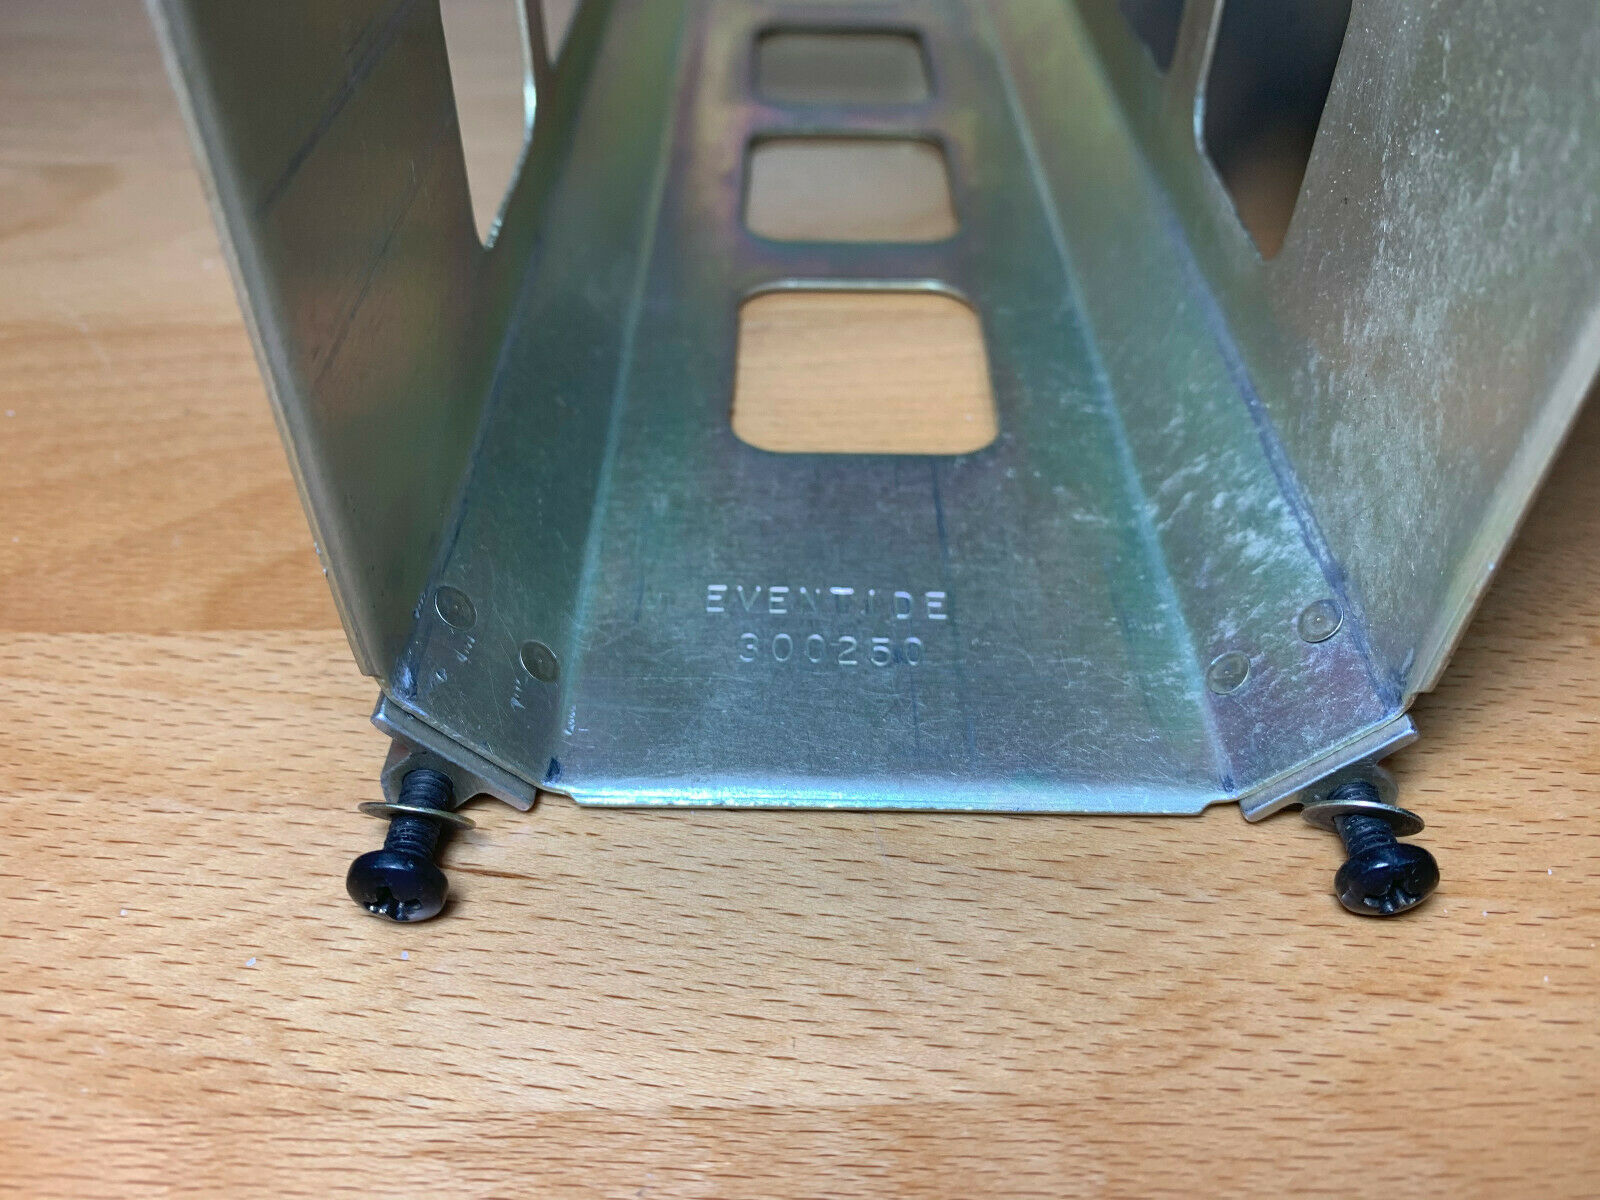 Eventide Argus 7000 tray rack P/N 300250 and backplate